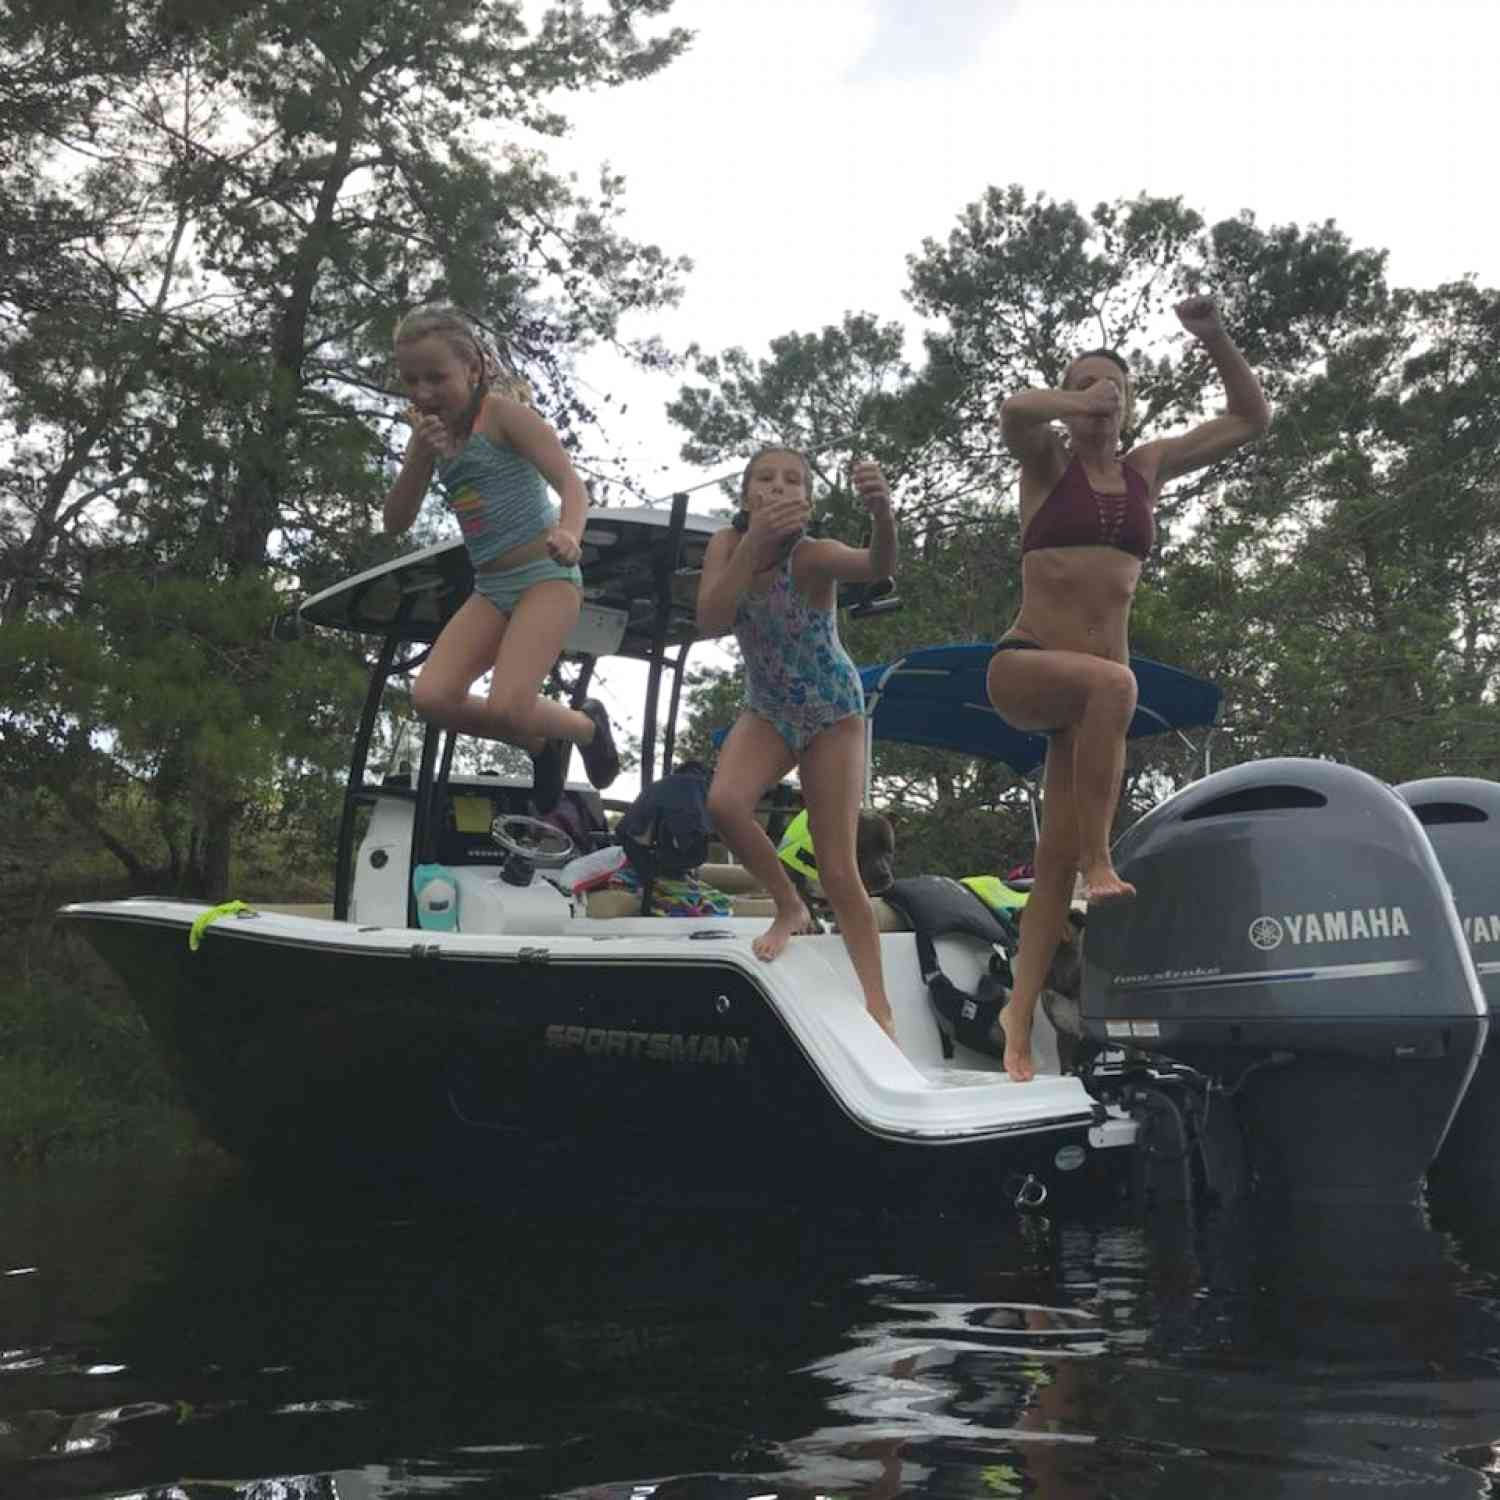 Title: Always a fun time on our Sportsman - On board their Sportsman Open 252 Center Console - Location: Ruskin, Florida. Participating in the Photo Contest #SportsmanAugust2018